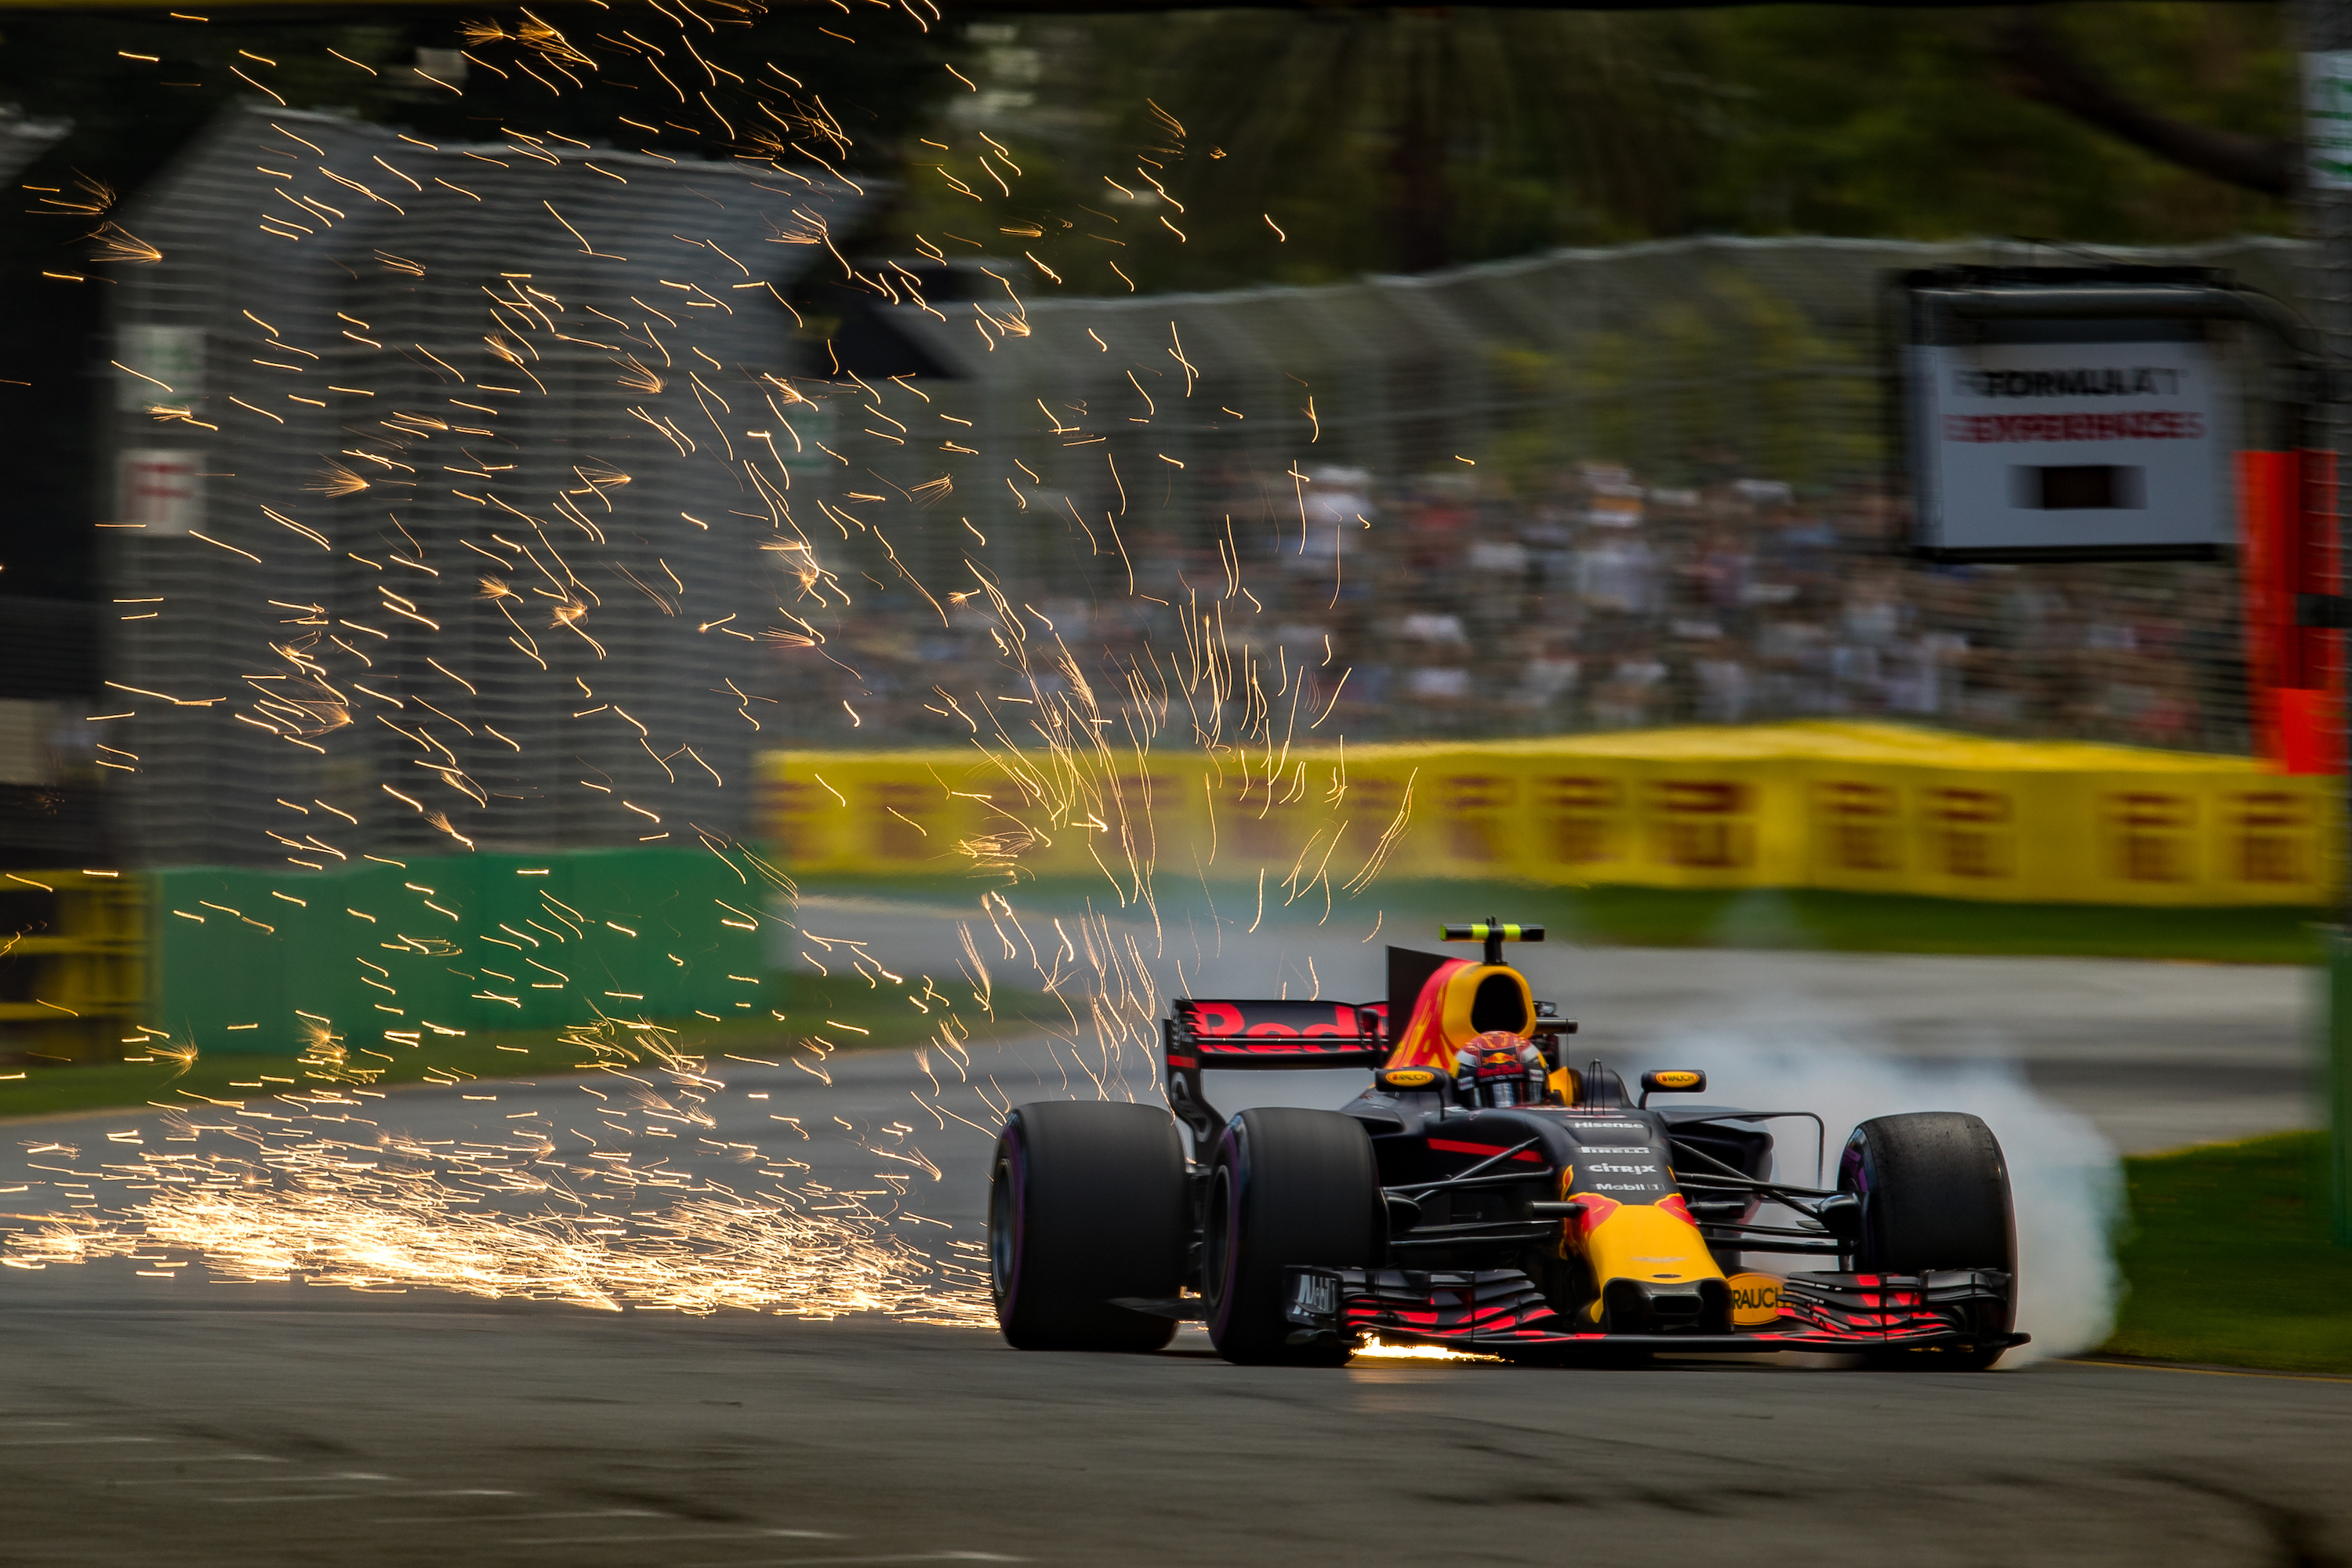 Max Verstappen at turn 6, 2017 Australian Grand Prix.